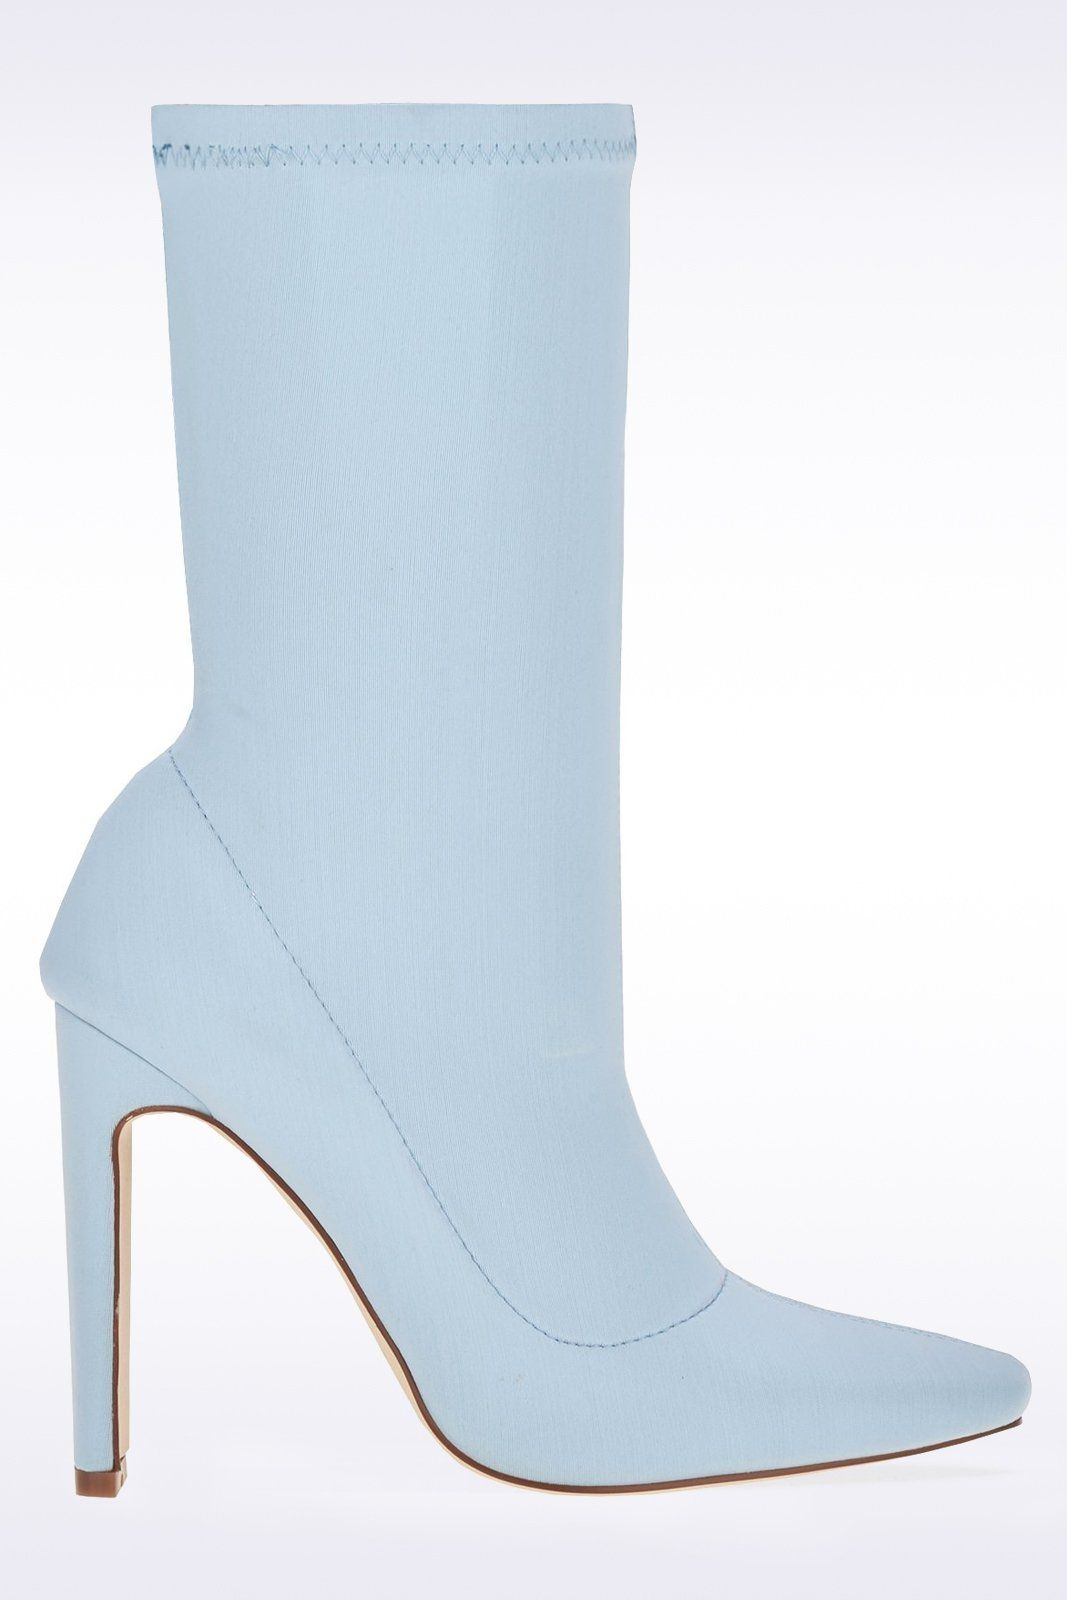 f4f5869b02f Baby Blue Pointed Toe Sock Boots-Boots-Hidden Fashion